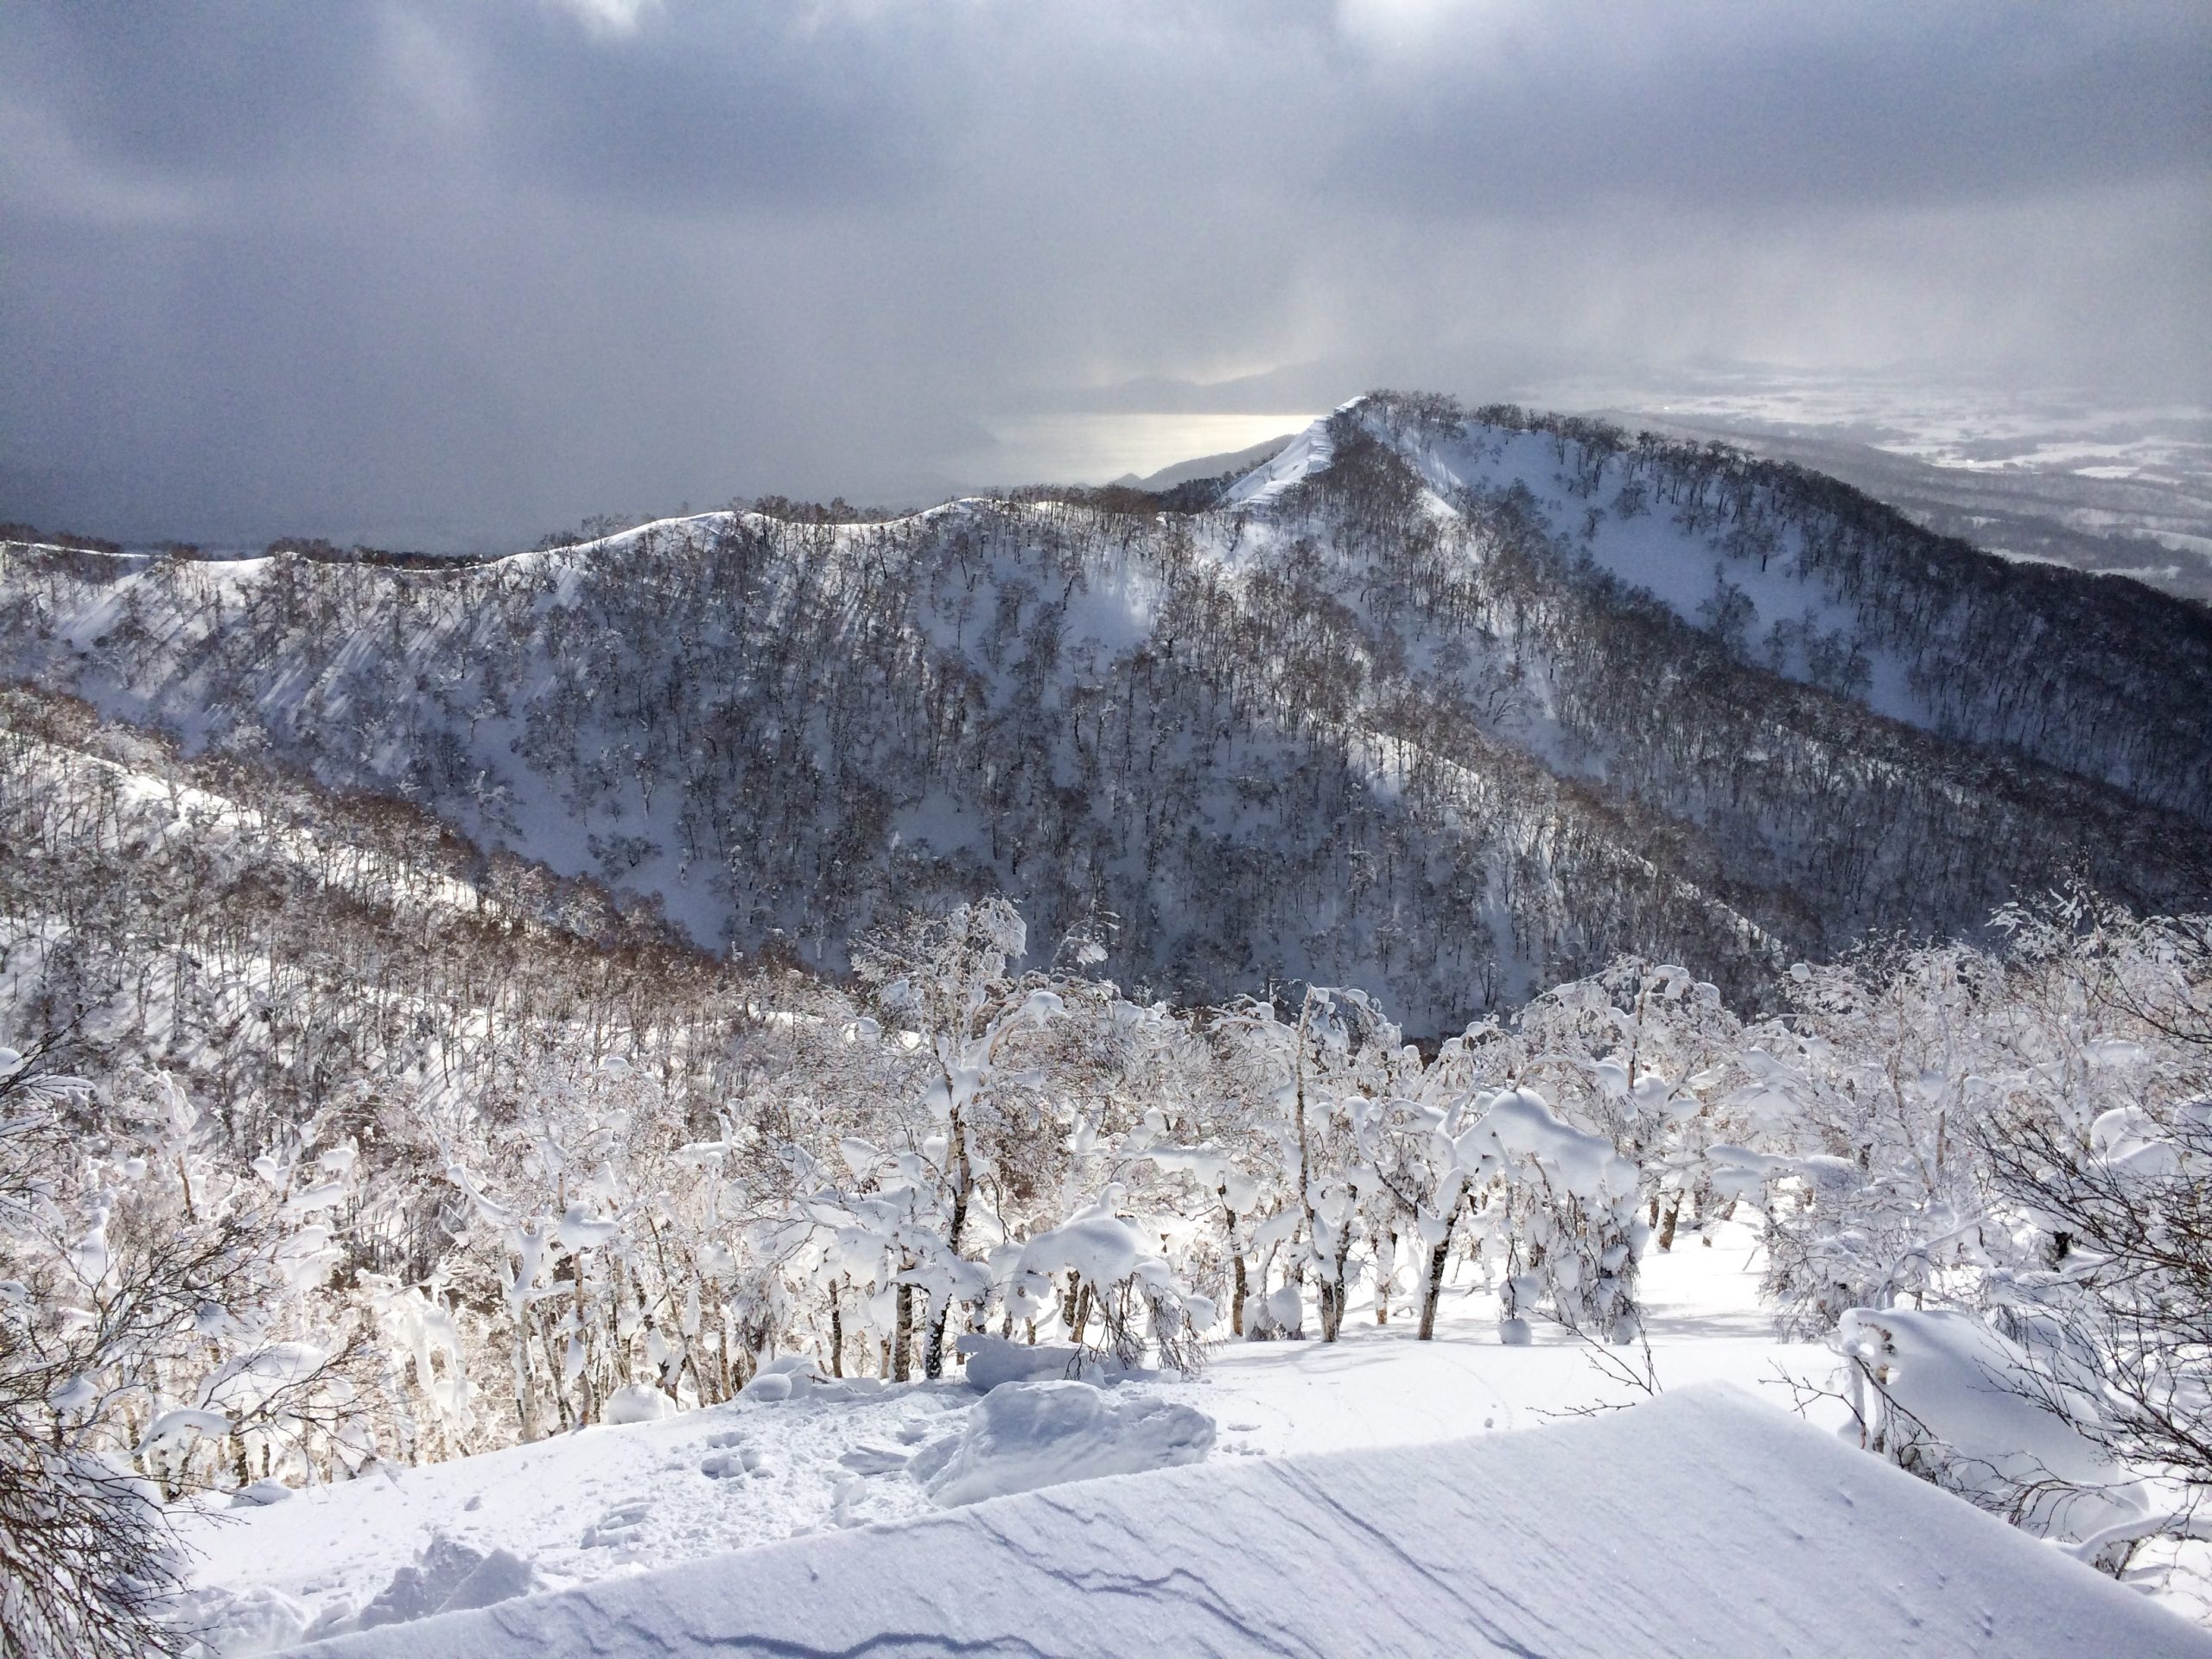 The view from Rusutsu, only 40 mins from Niseko